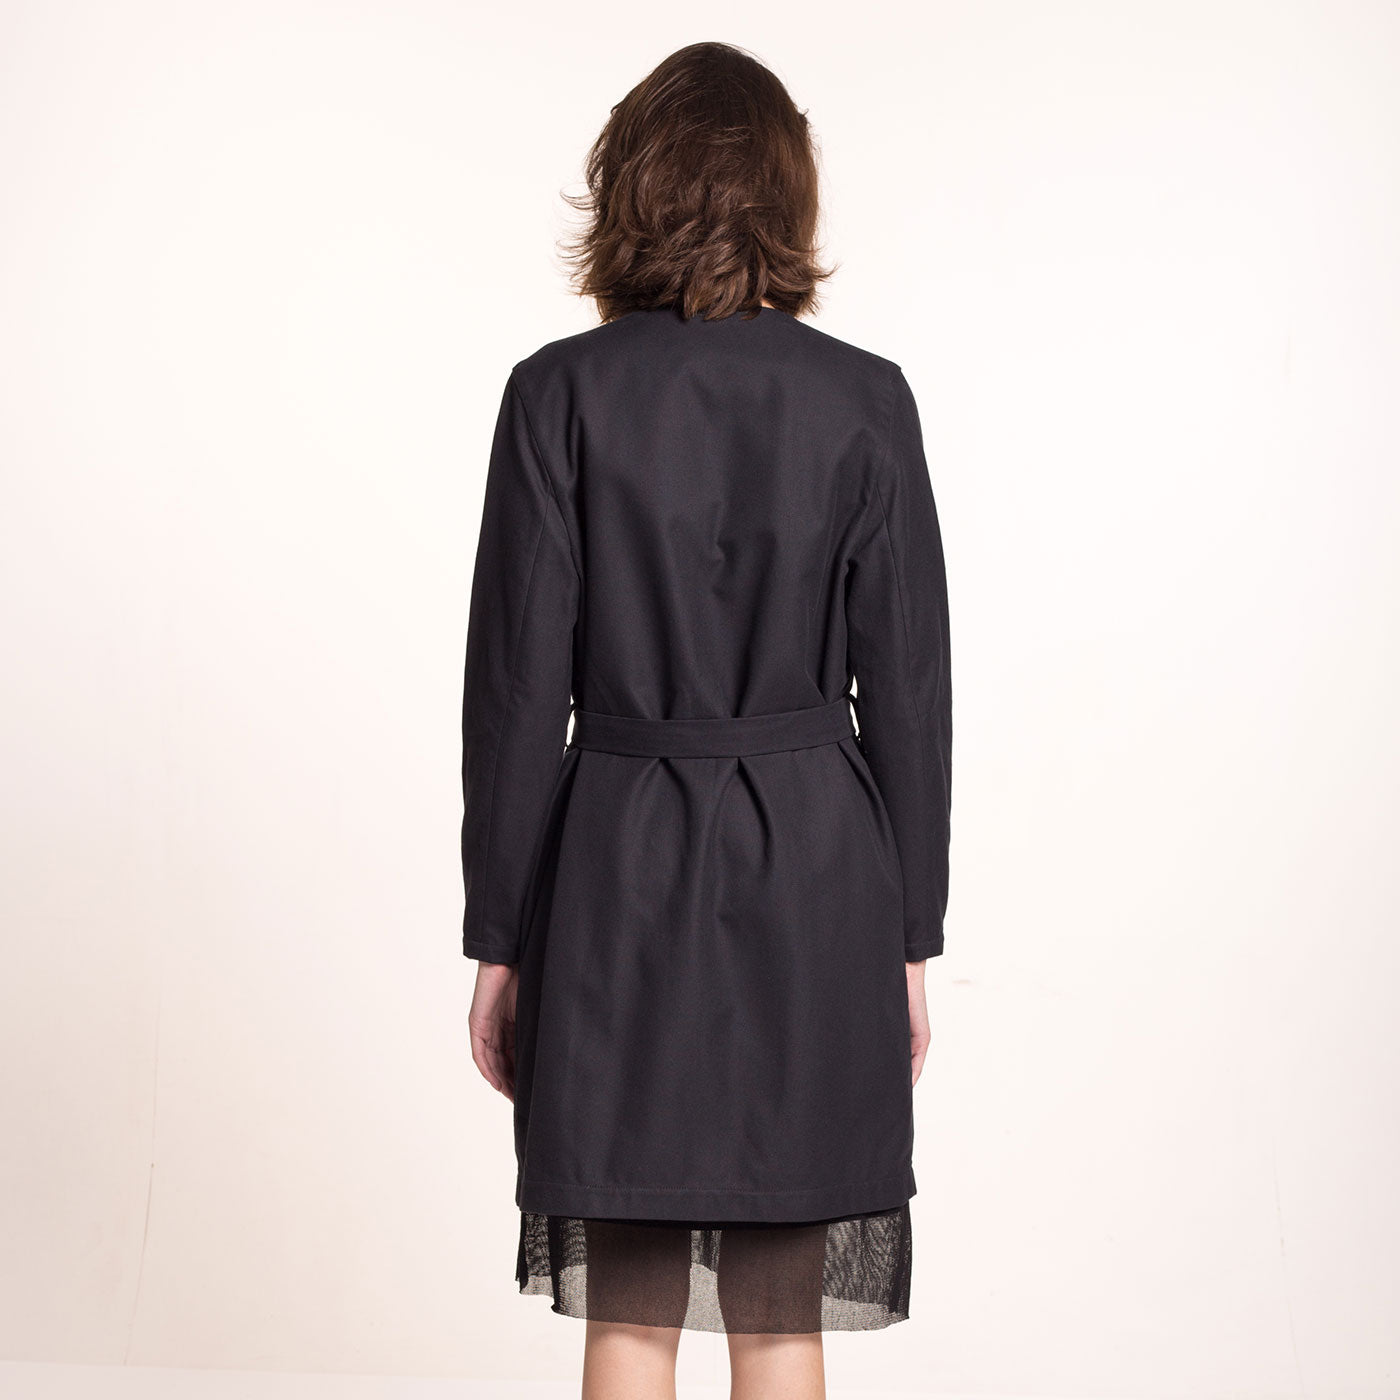 The model wears a black, sustainable cotton coat, with round neckline, straight fit and a belt, back view.